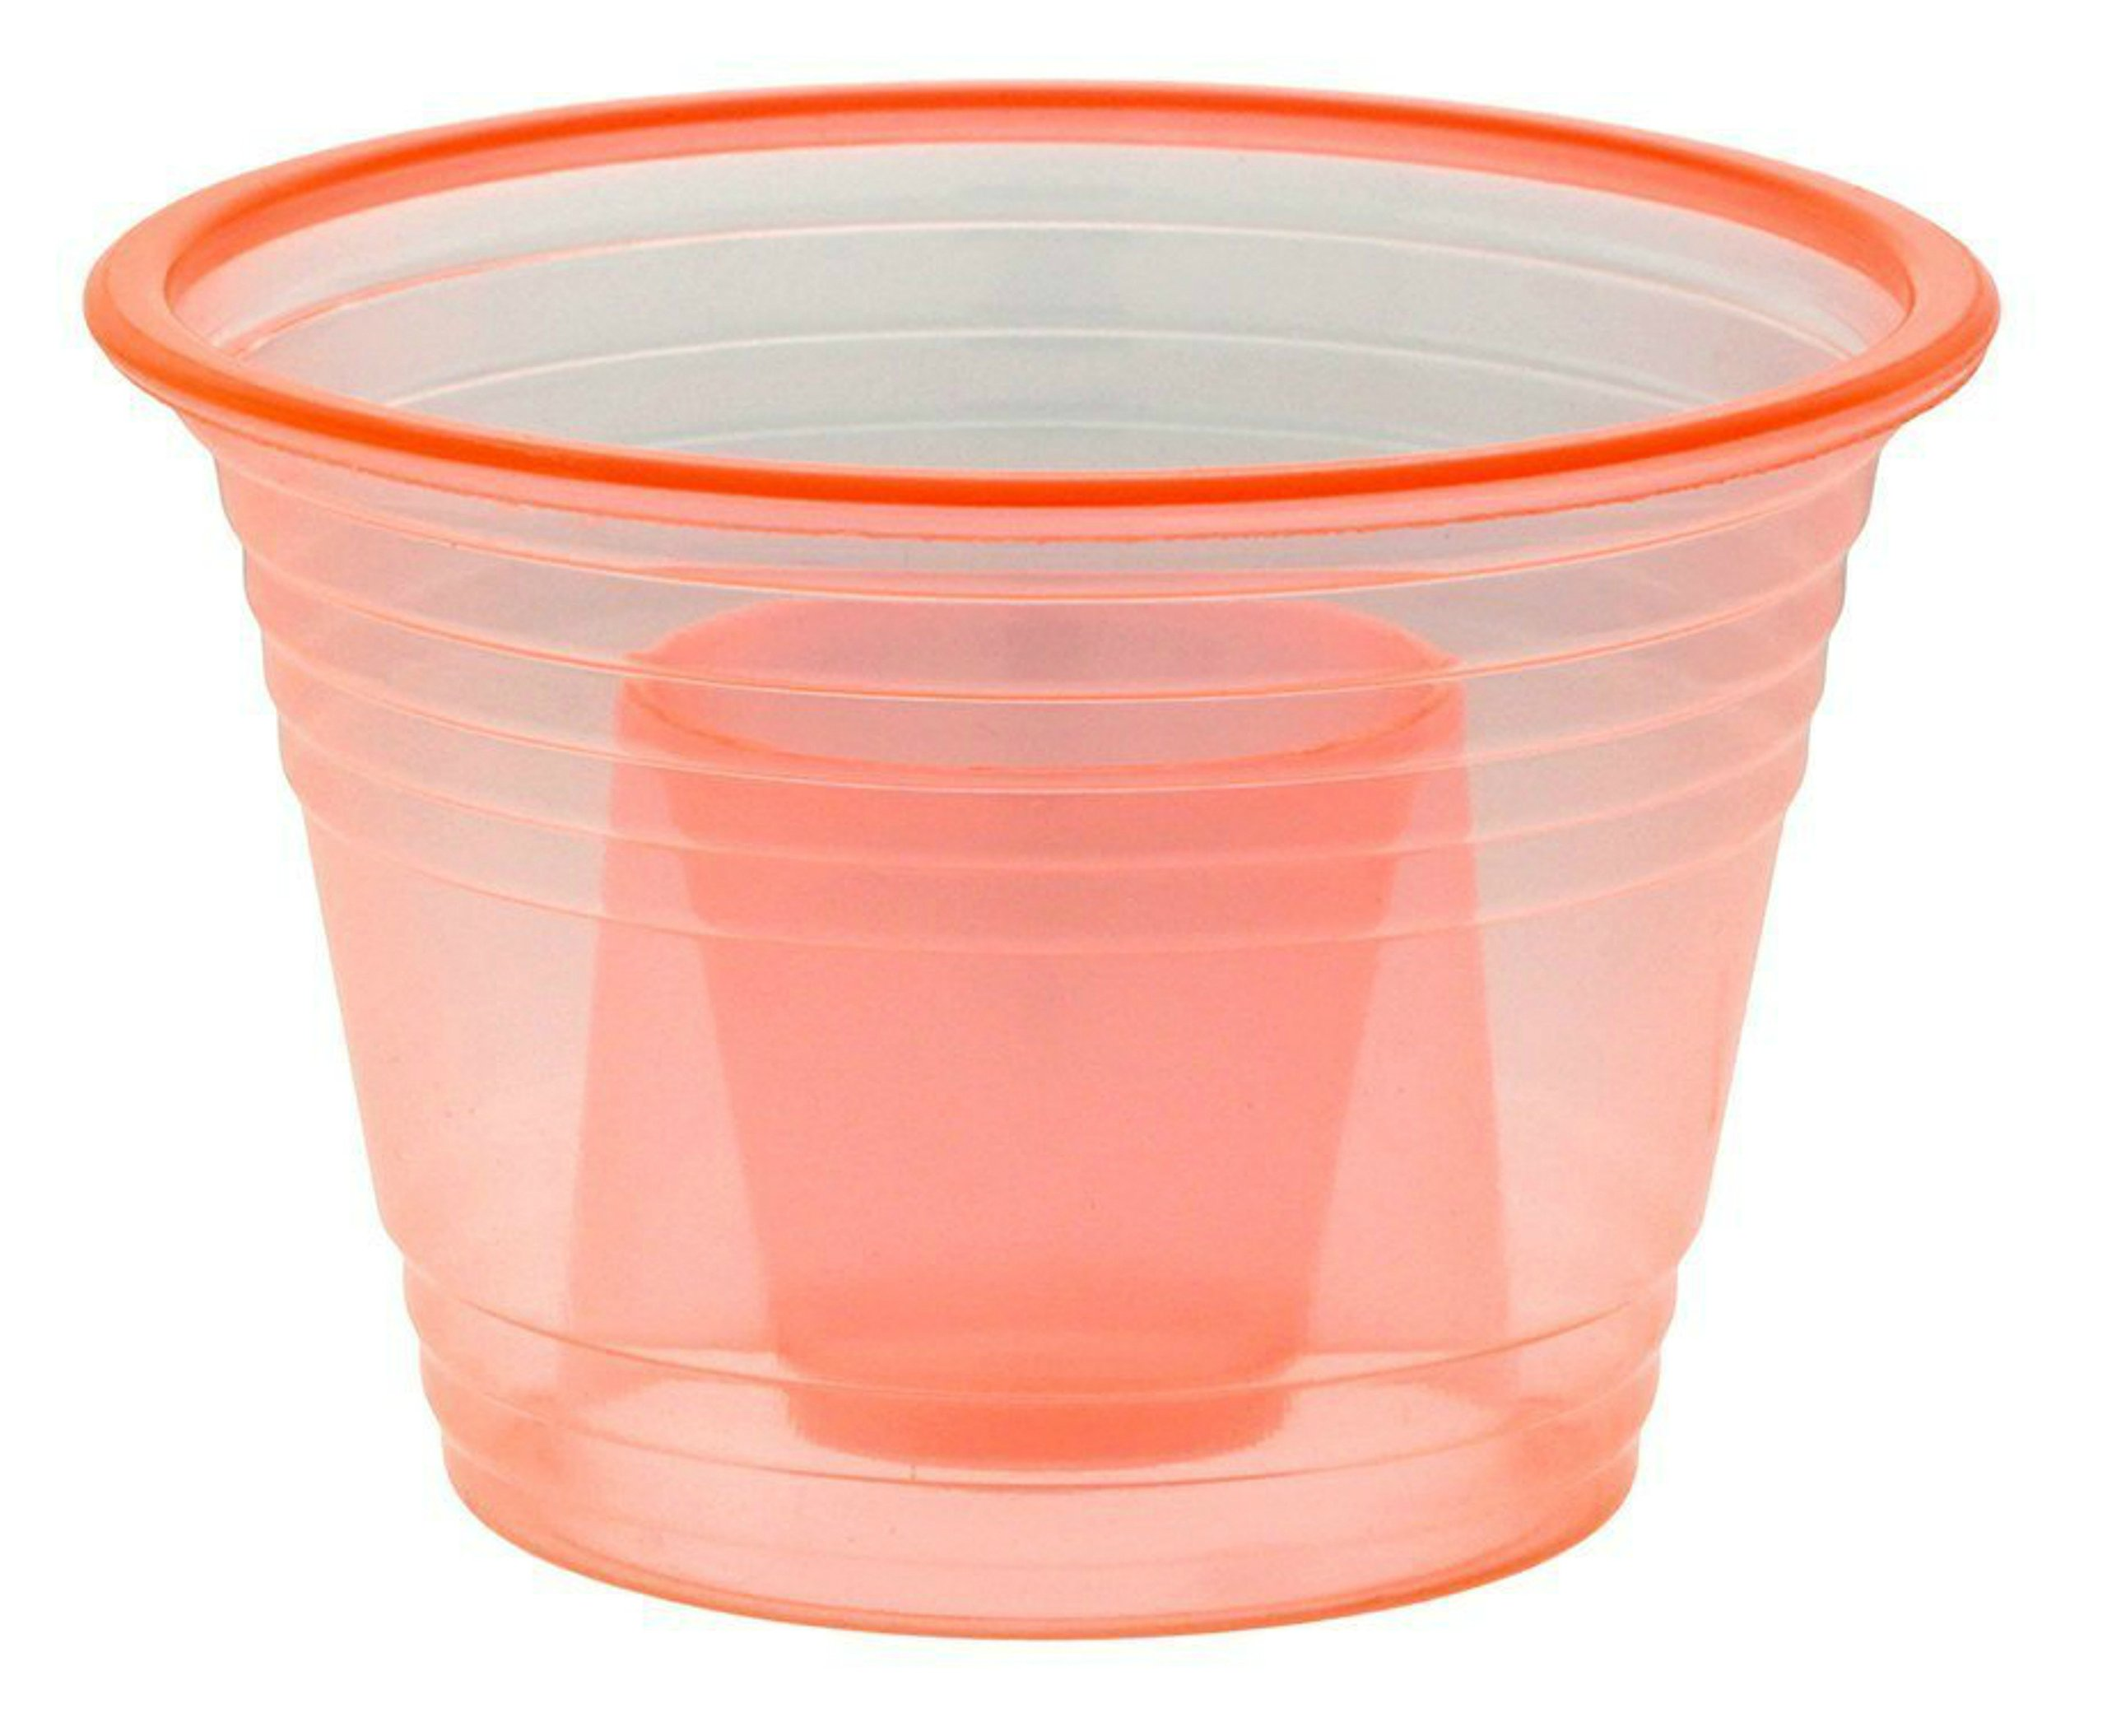 Zappy 50 Neon Orange Jager Bomb Cups Disposable Plastic Party Bomber Power Bomber Jager Bomb Cups Cool Double Shot Glass Glasses Shot Cup Cups Jager bomb glasses for mixed shots 50Ct Orange Jagerbombs